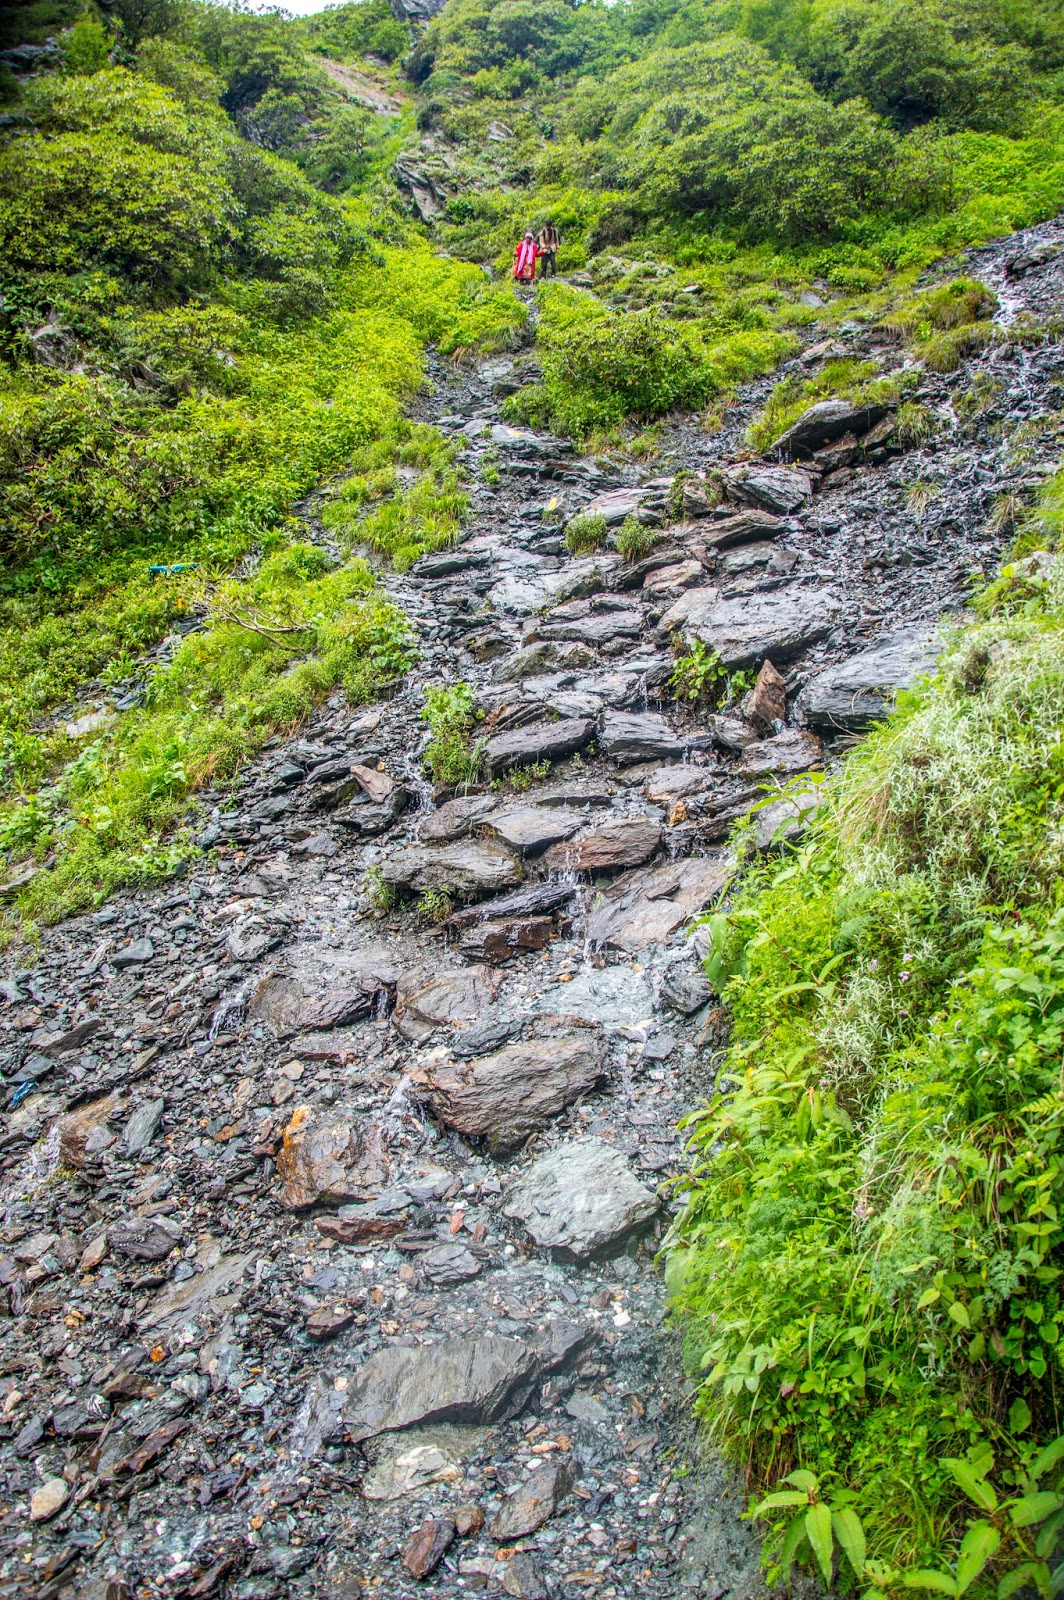 Flowing water makes the climb difficult